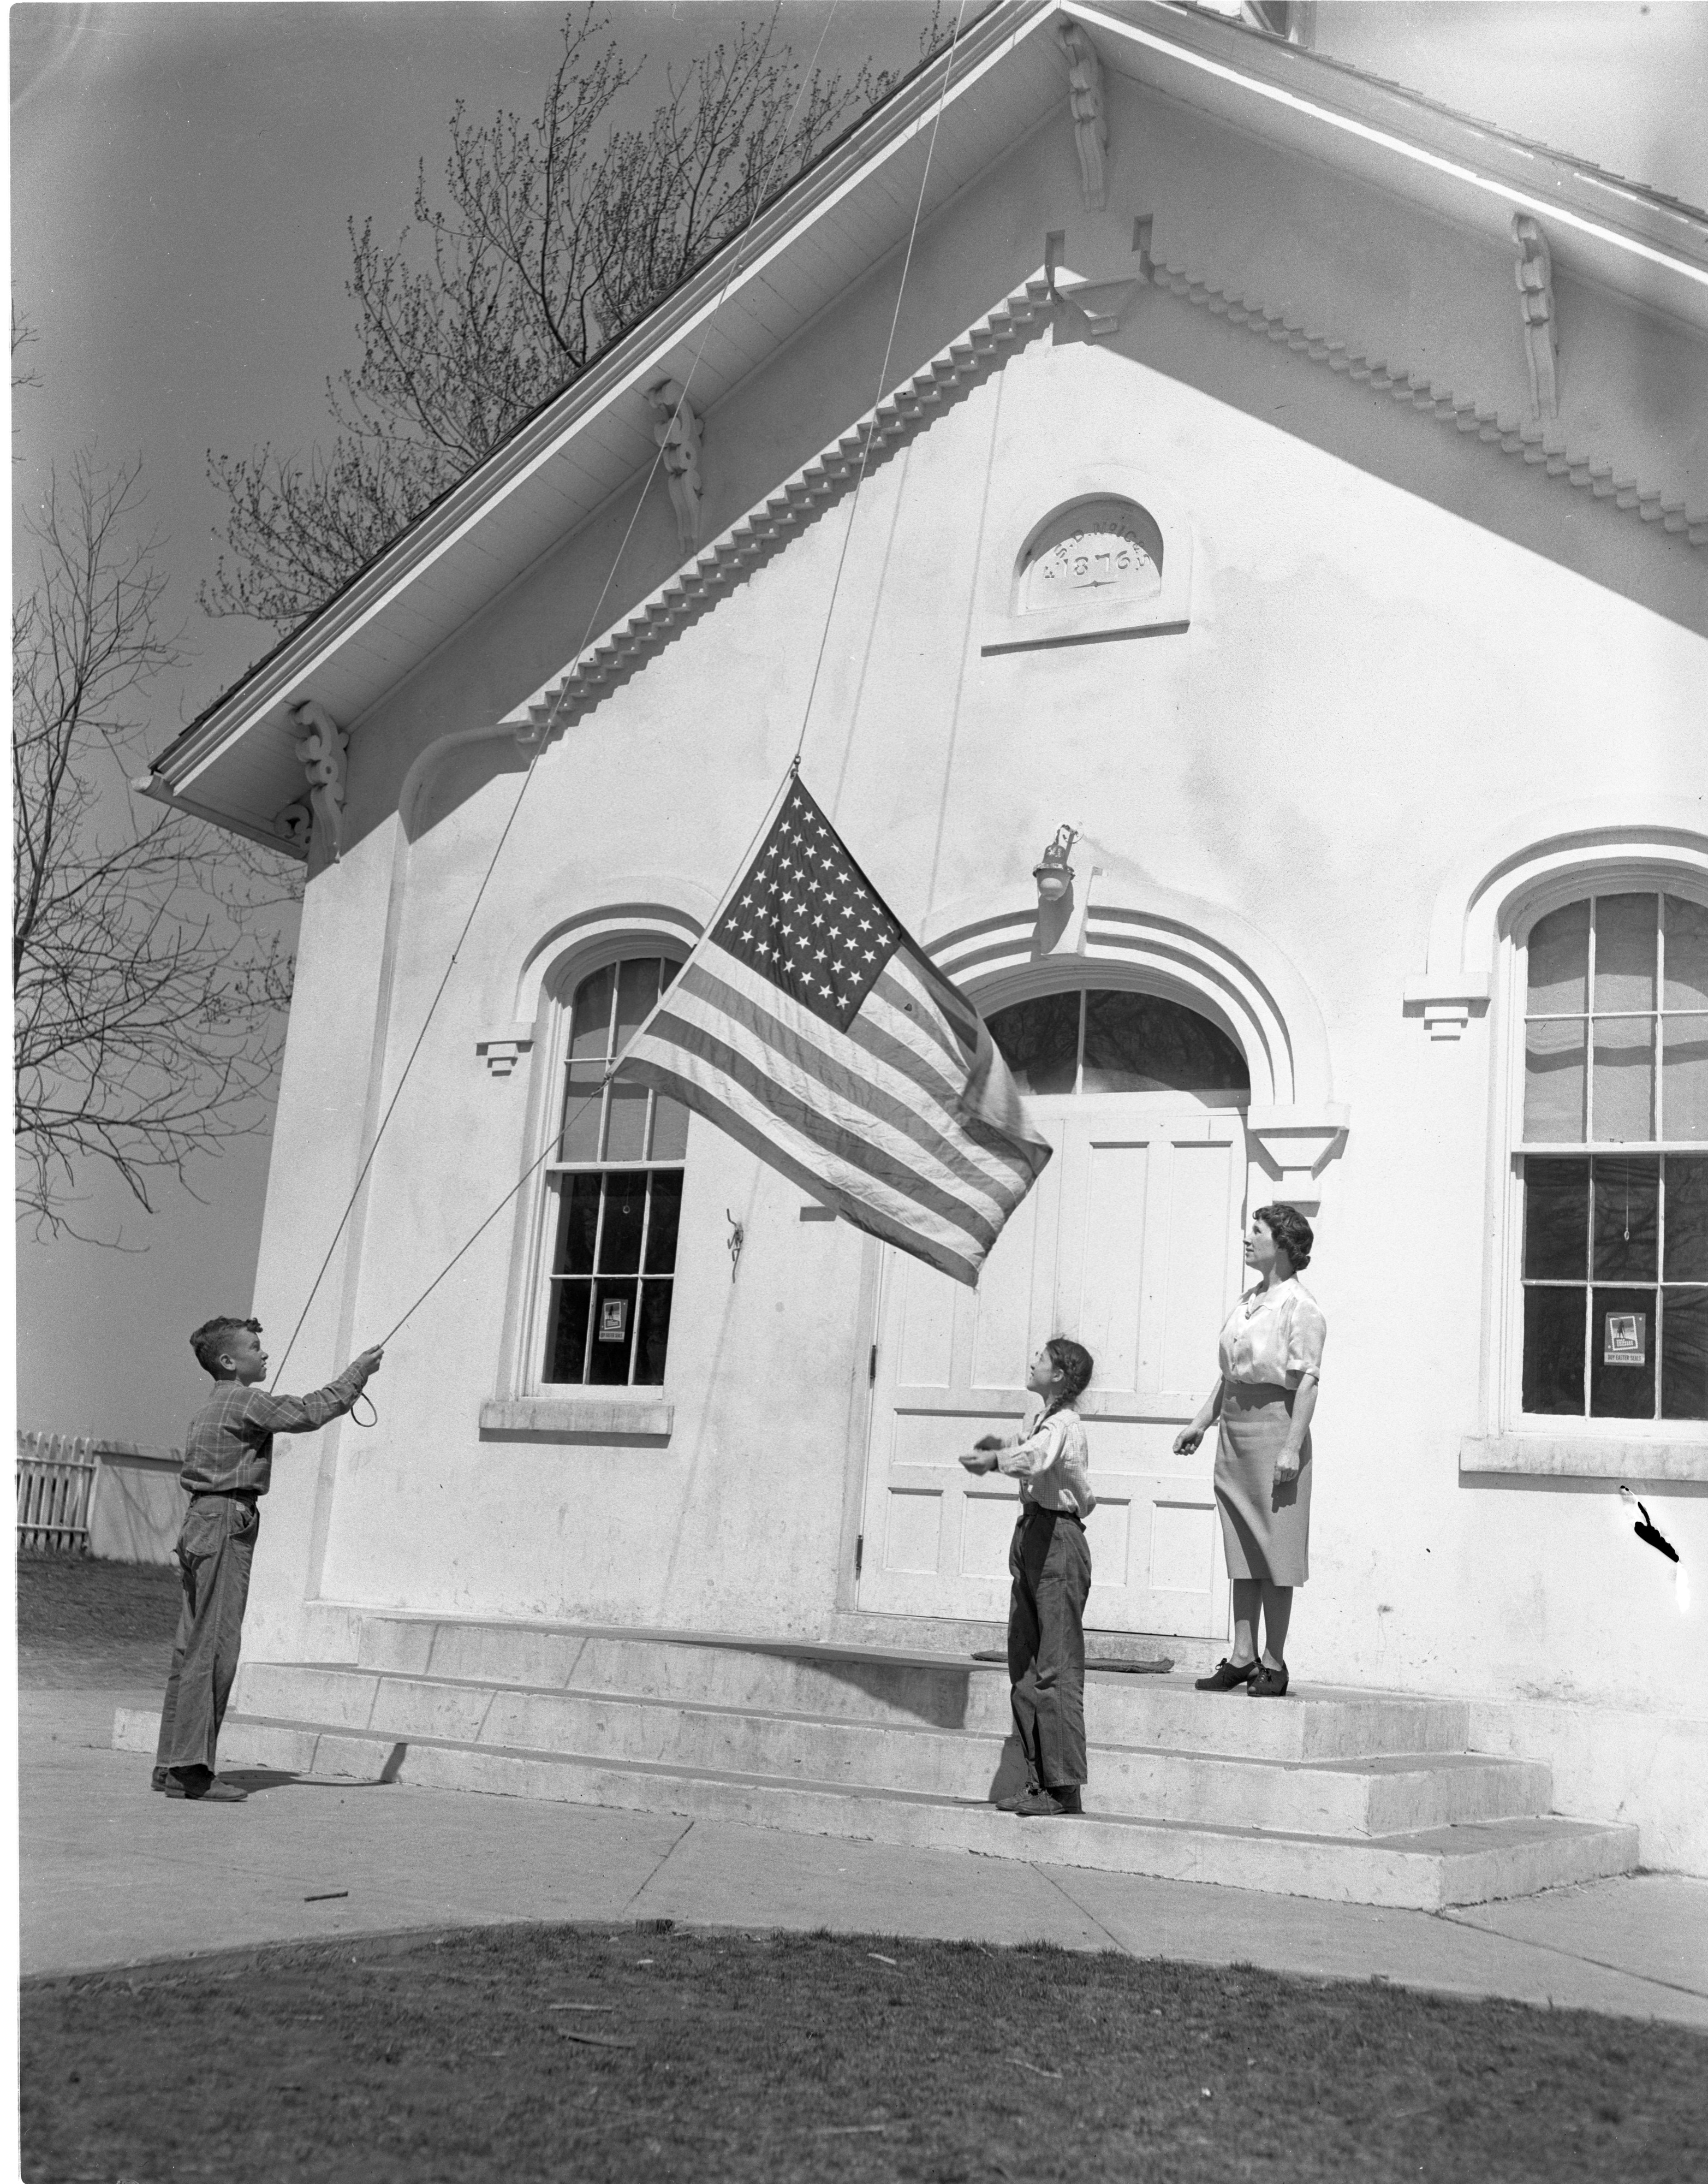 Flag Raising At Cherry Hill School, April 1949 image